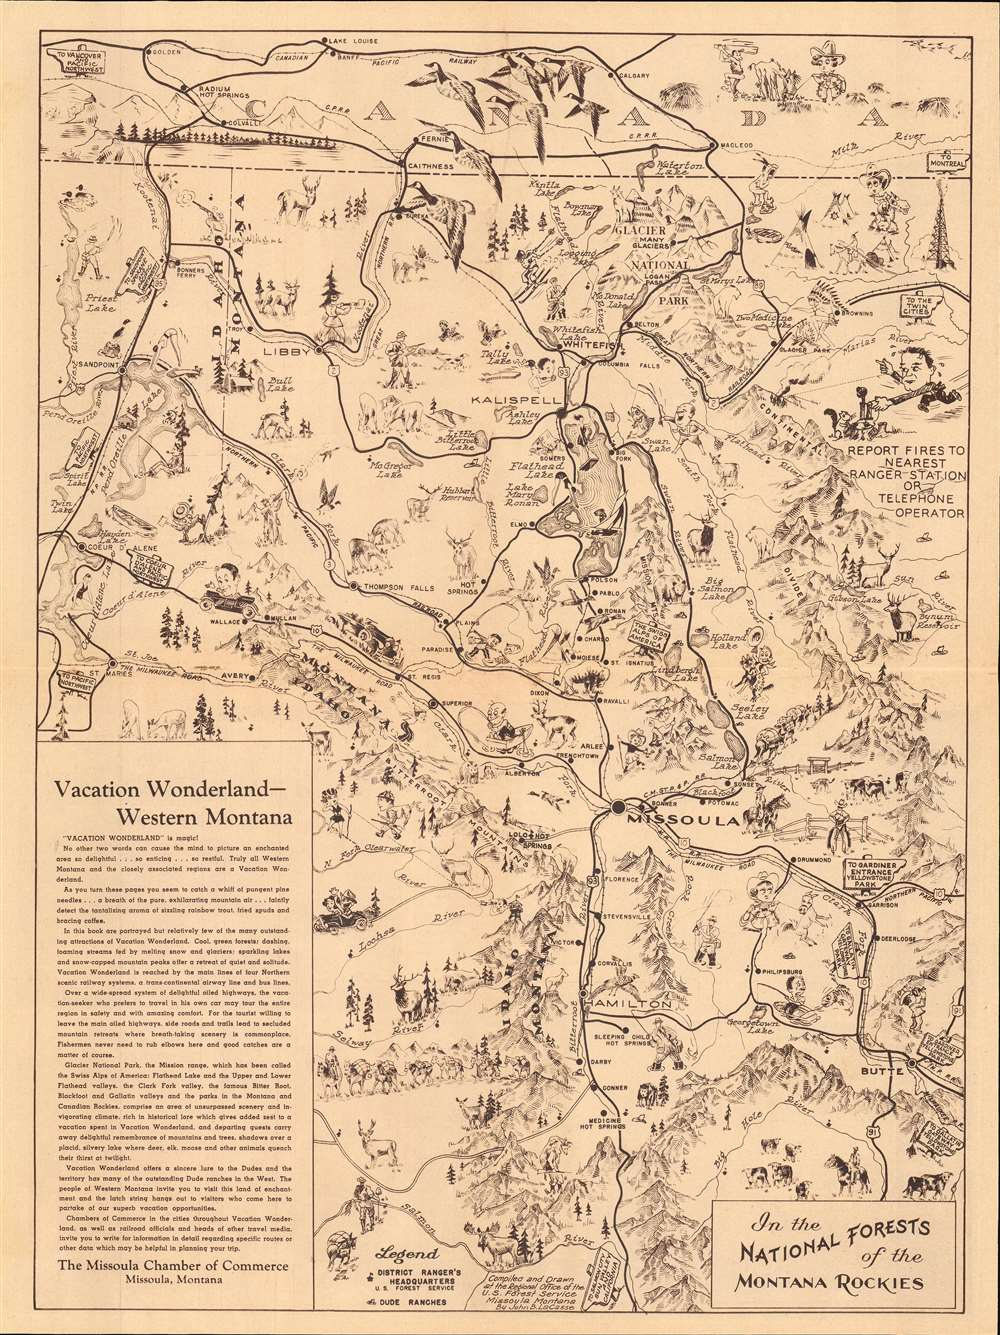 1940 LaCasse Pictorial Tourist Map of Western Montana